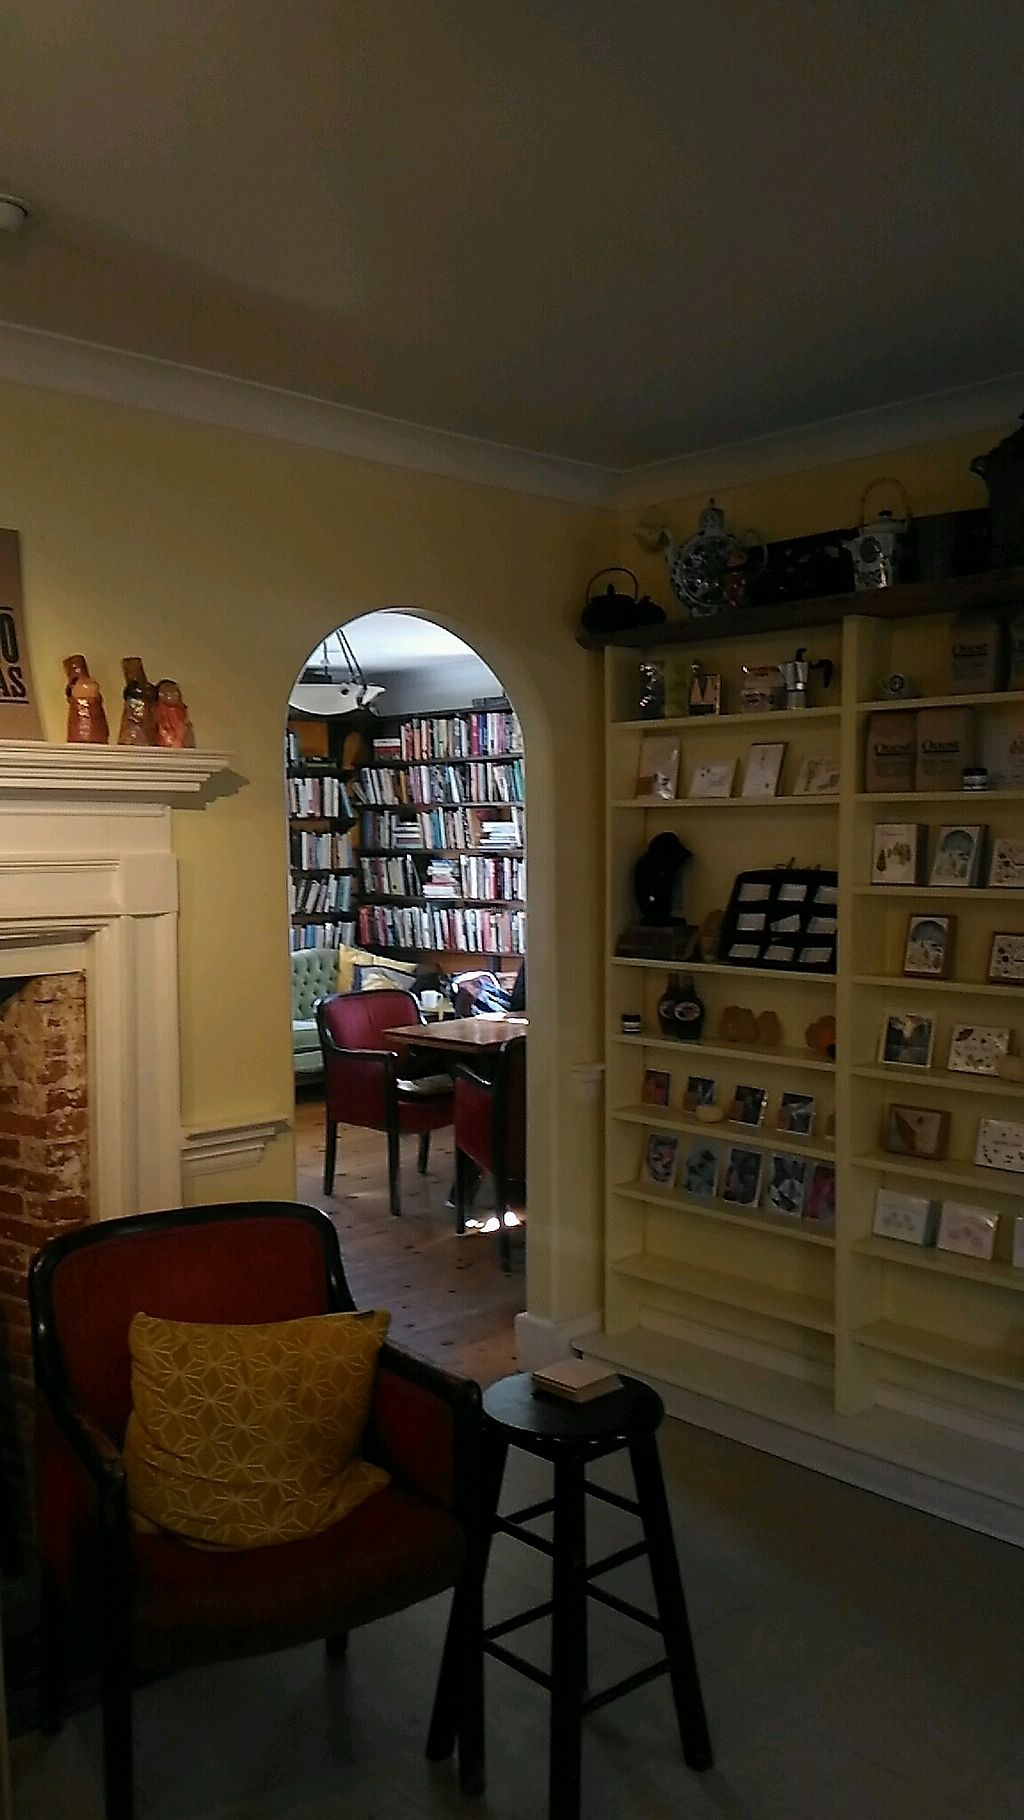 """Photo of The Biscuit Eater Cafe and Books  by <a href=""""/members/profile/QuothTheRaven"""">QuothTheRaven</a> <br/>inside <br/> November 12, 2017  - <a href='/contact/abuse/image/100711/324696'>Report</a>"""